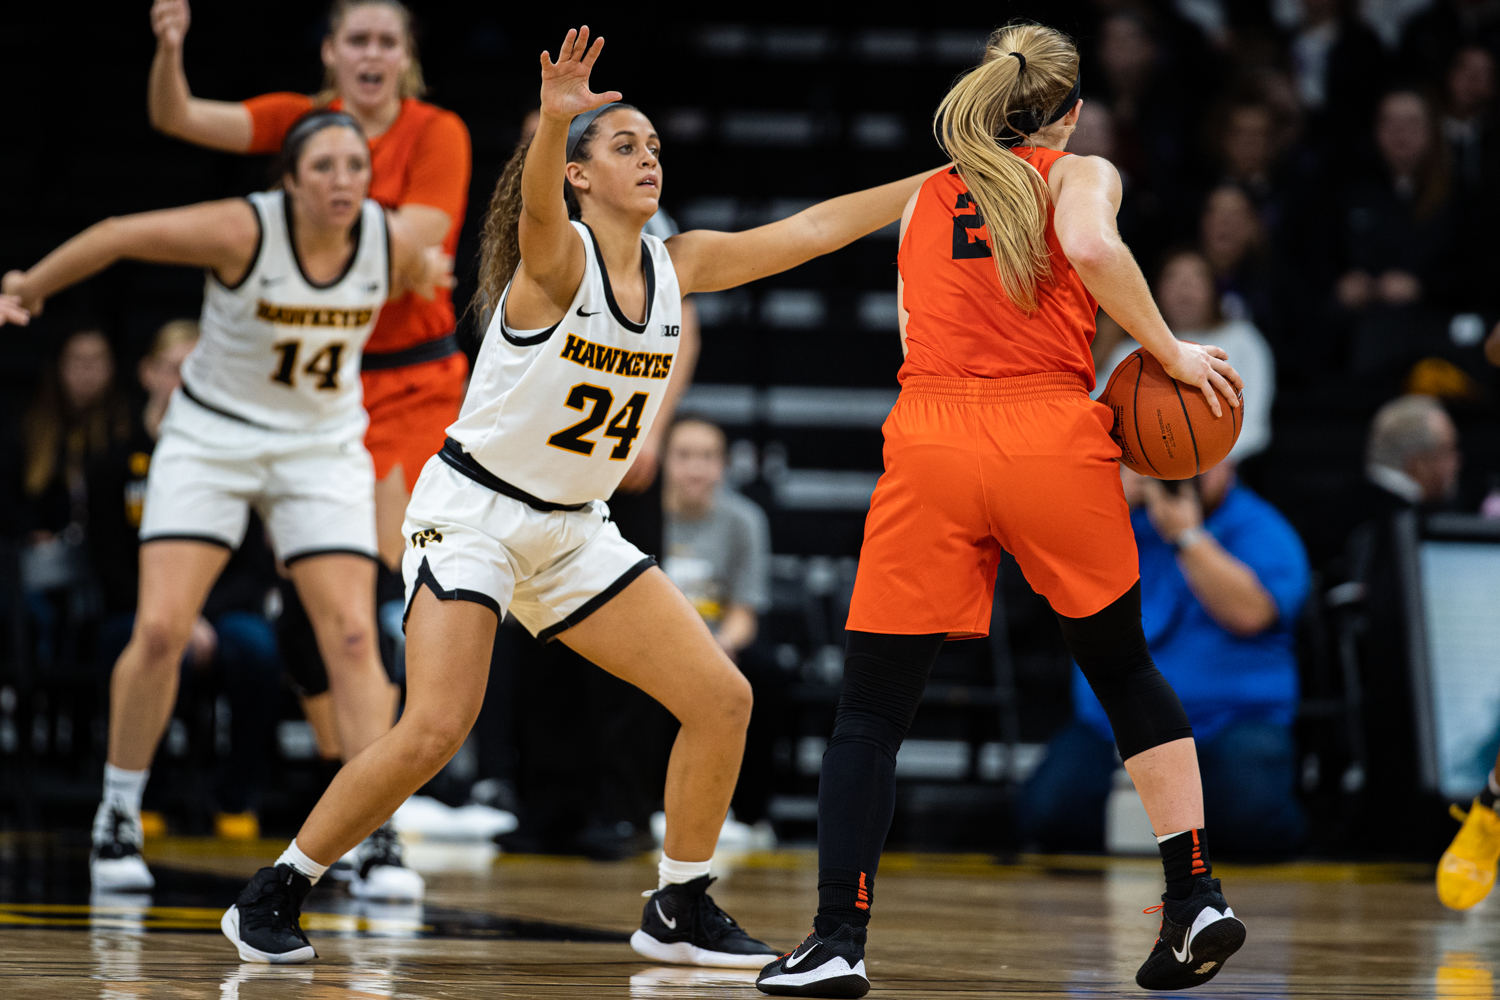 Iowa guard Gabbie Marshall defends against Princeton's Carlie Littlefield during a women's basketball game between Iowa and Princeton at Carver-Hawkeye Arena on Wednesday, November 20, 2019. The Hawkeyes defeated the Tigers, 77-75 in overtime.